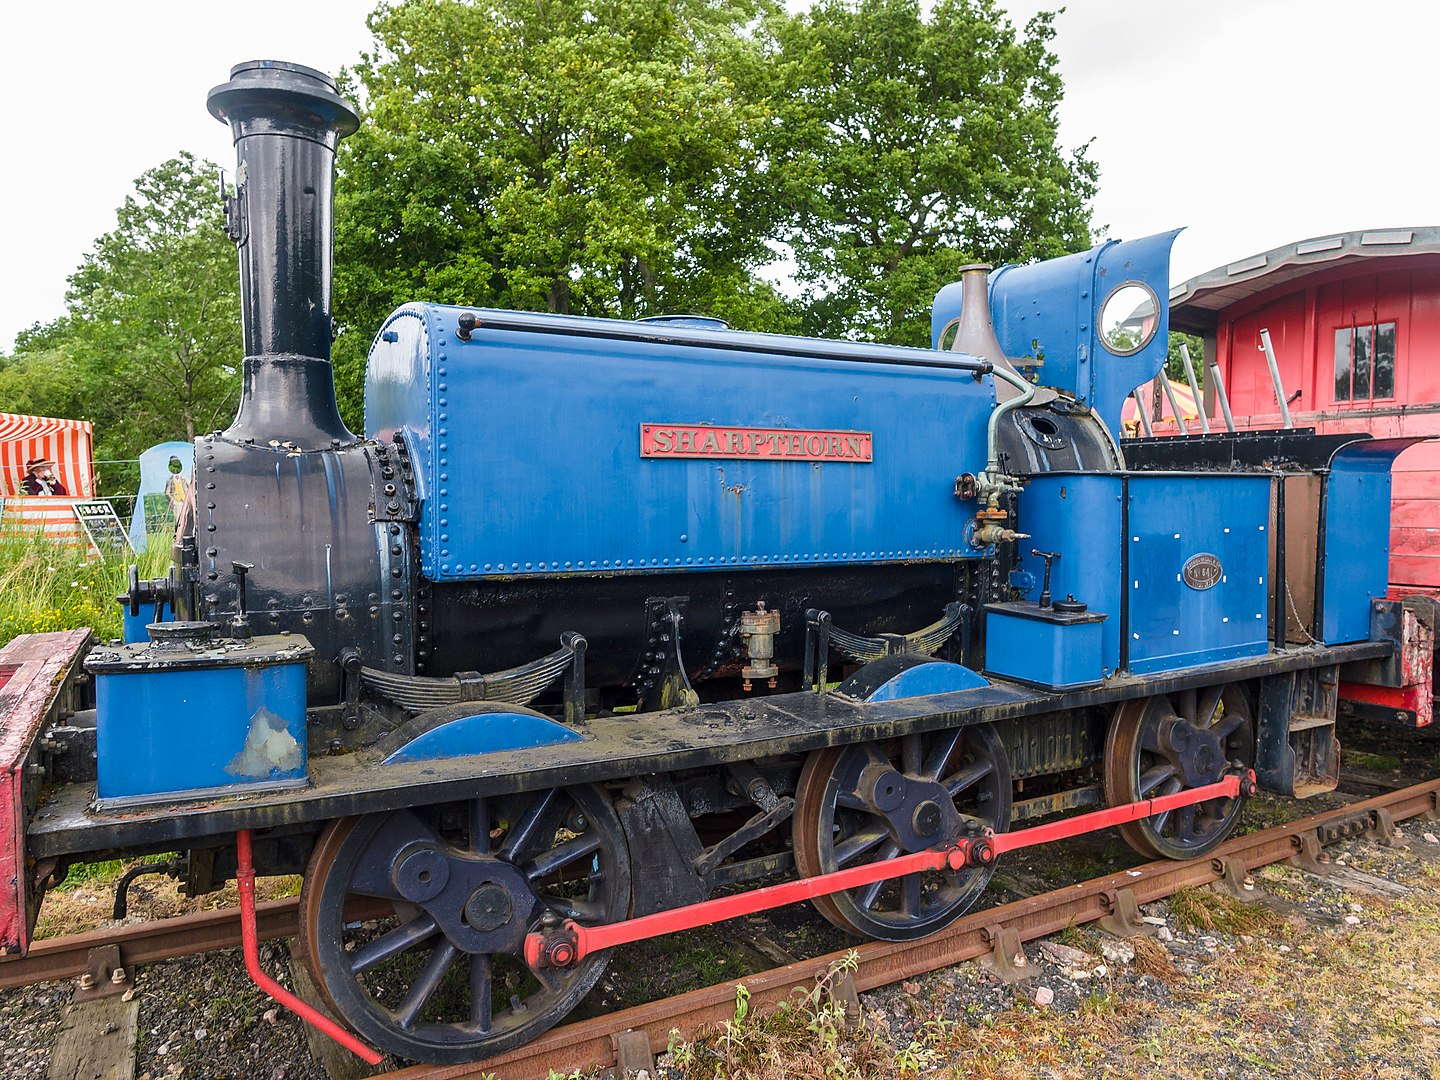 641 'Sharpthorn' at the Bluebell Railway in June 2013. ©James Petts